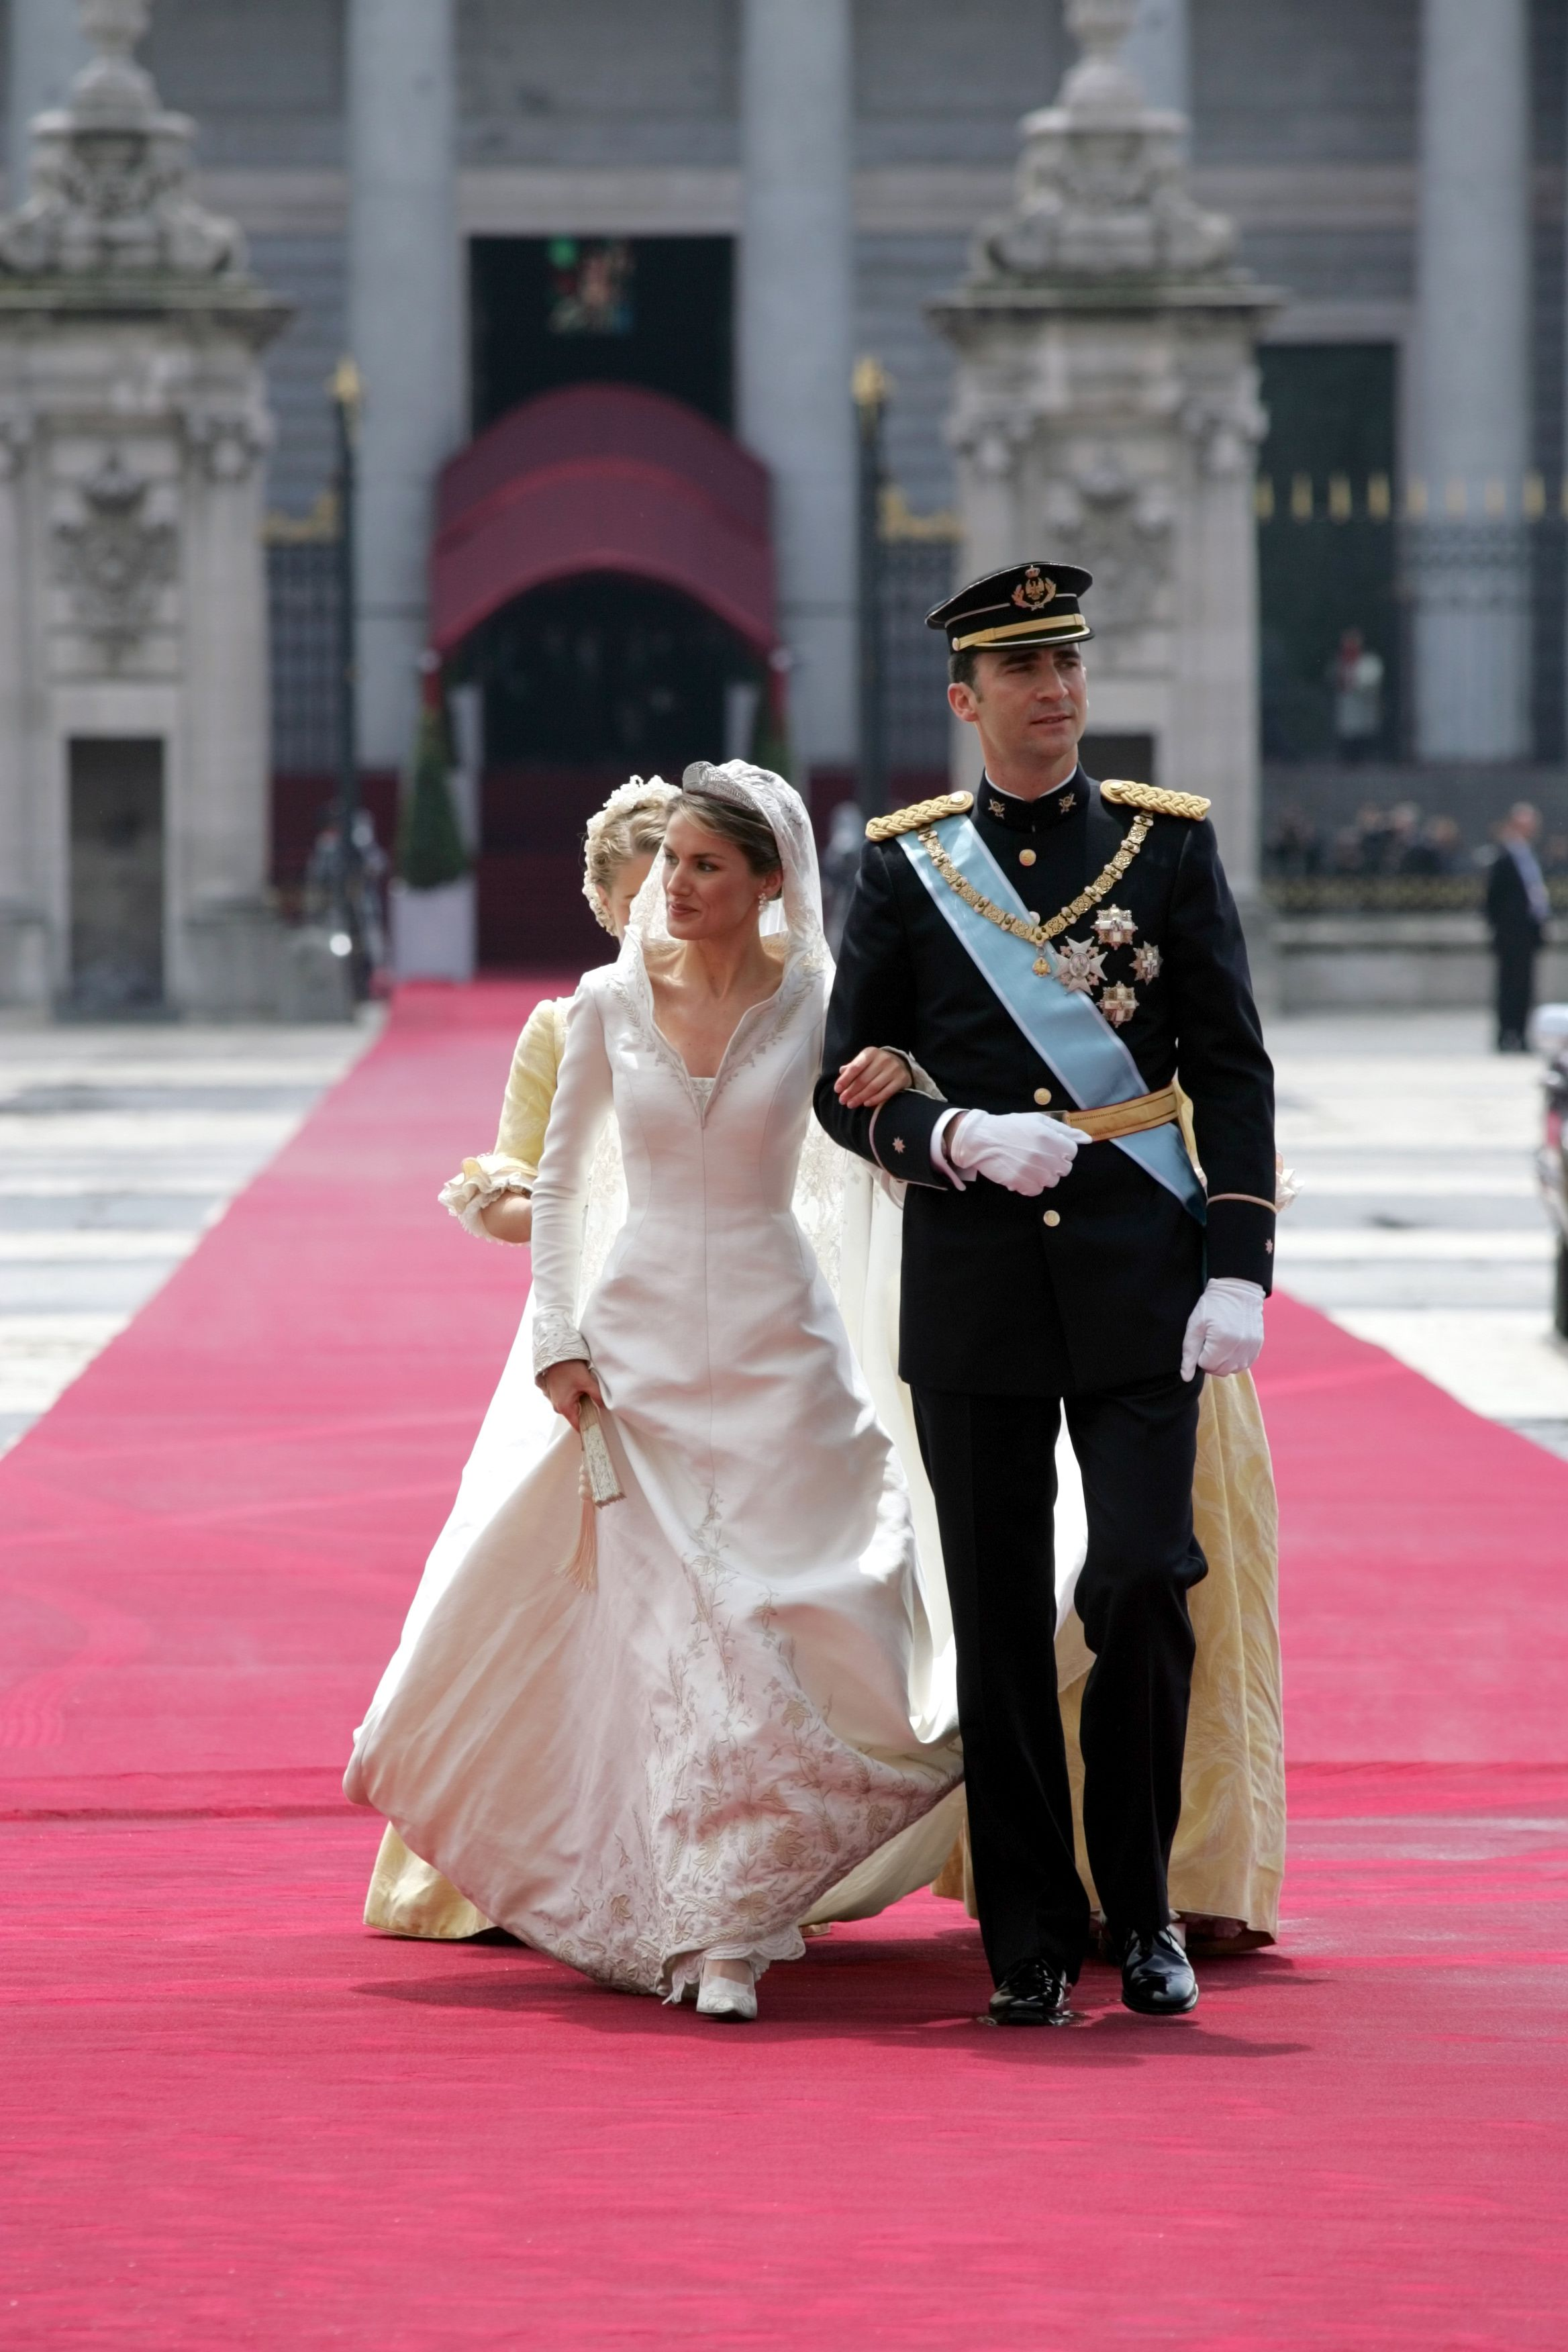 Pin by Kö ln on Letizia  Royal brides, Royal wedding gowns, Royal